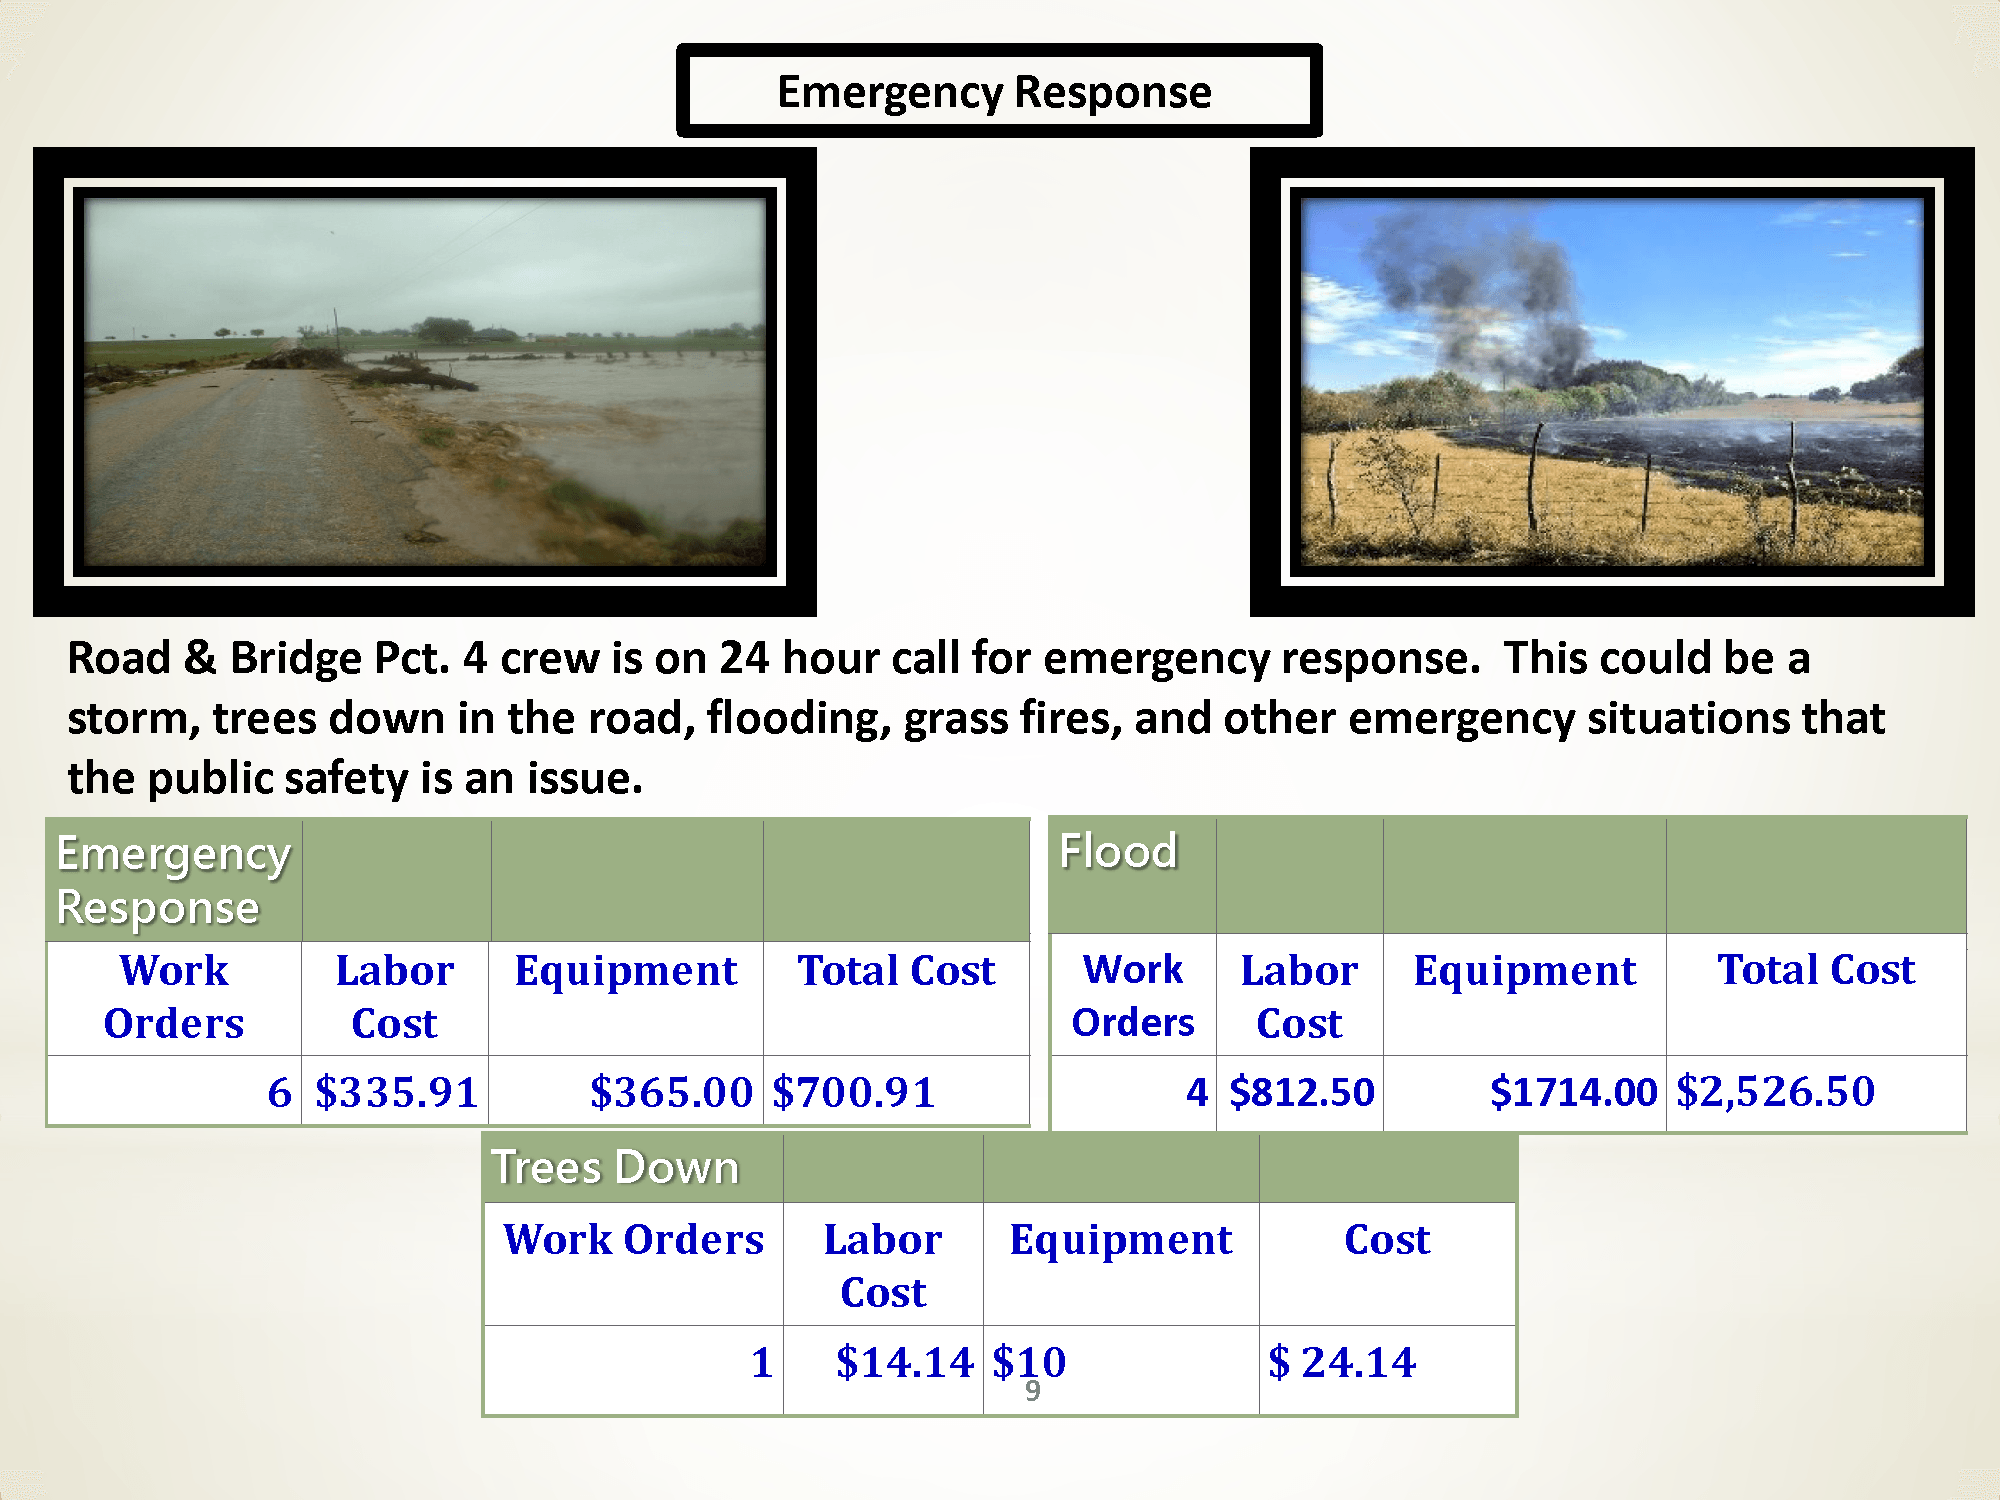 Emergency Response Information, Pictures of Grass Fires and Flooding